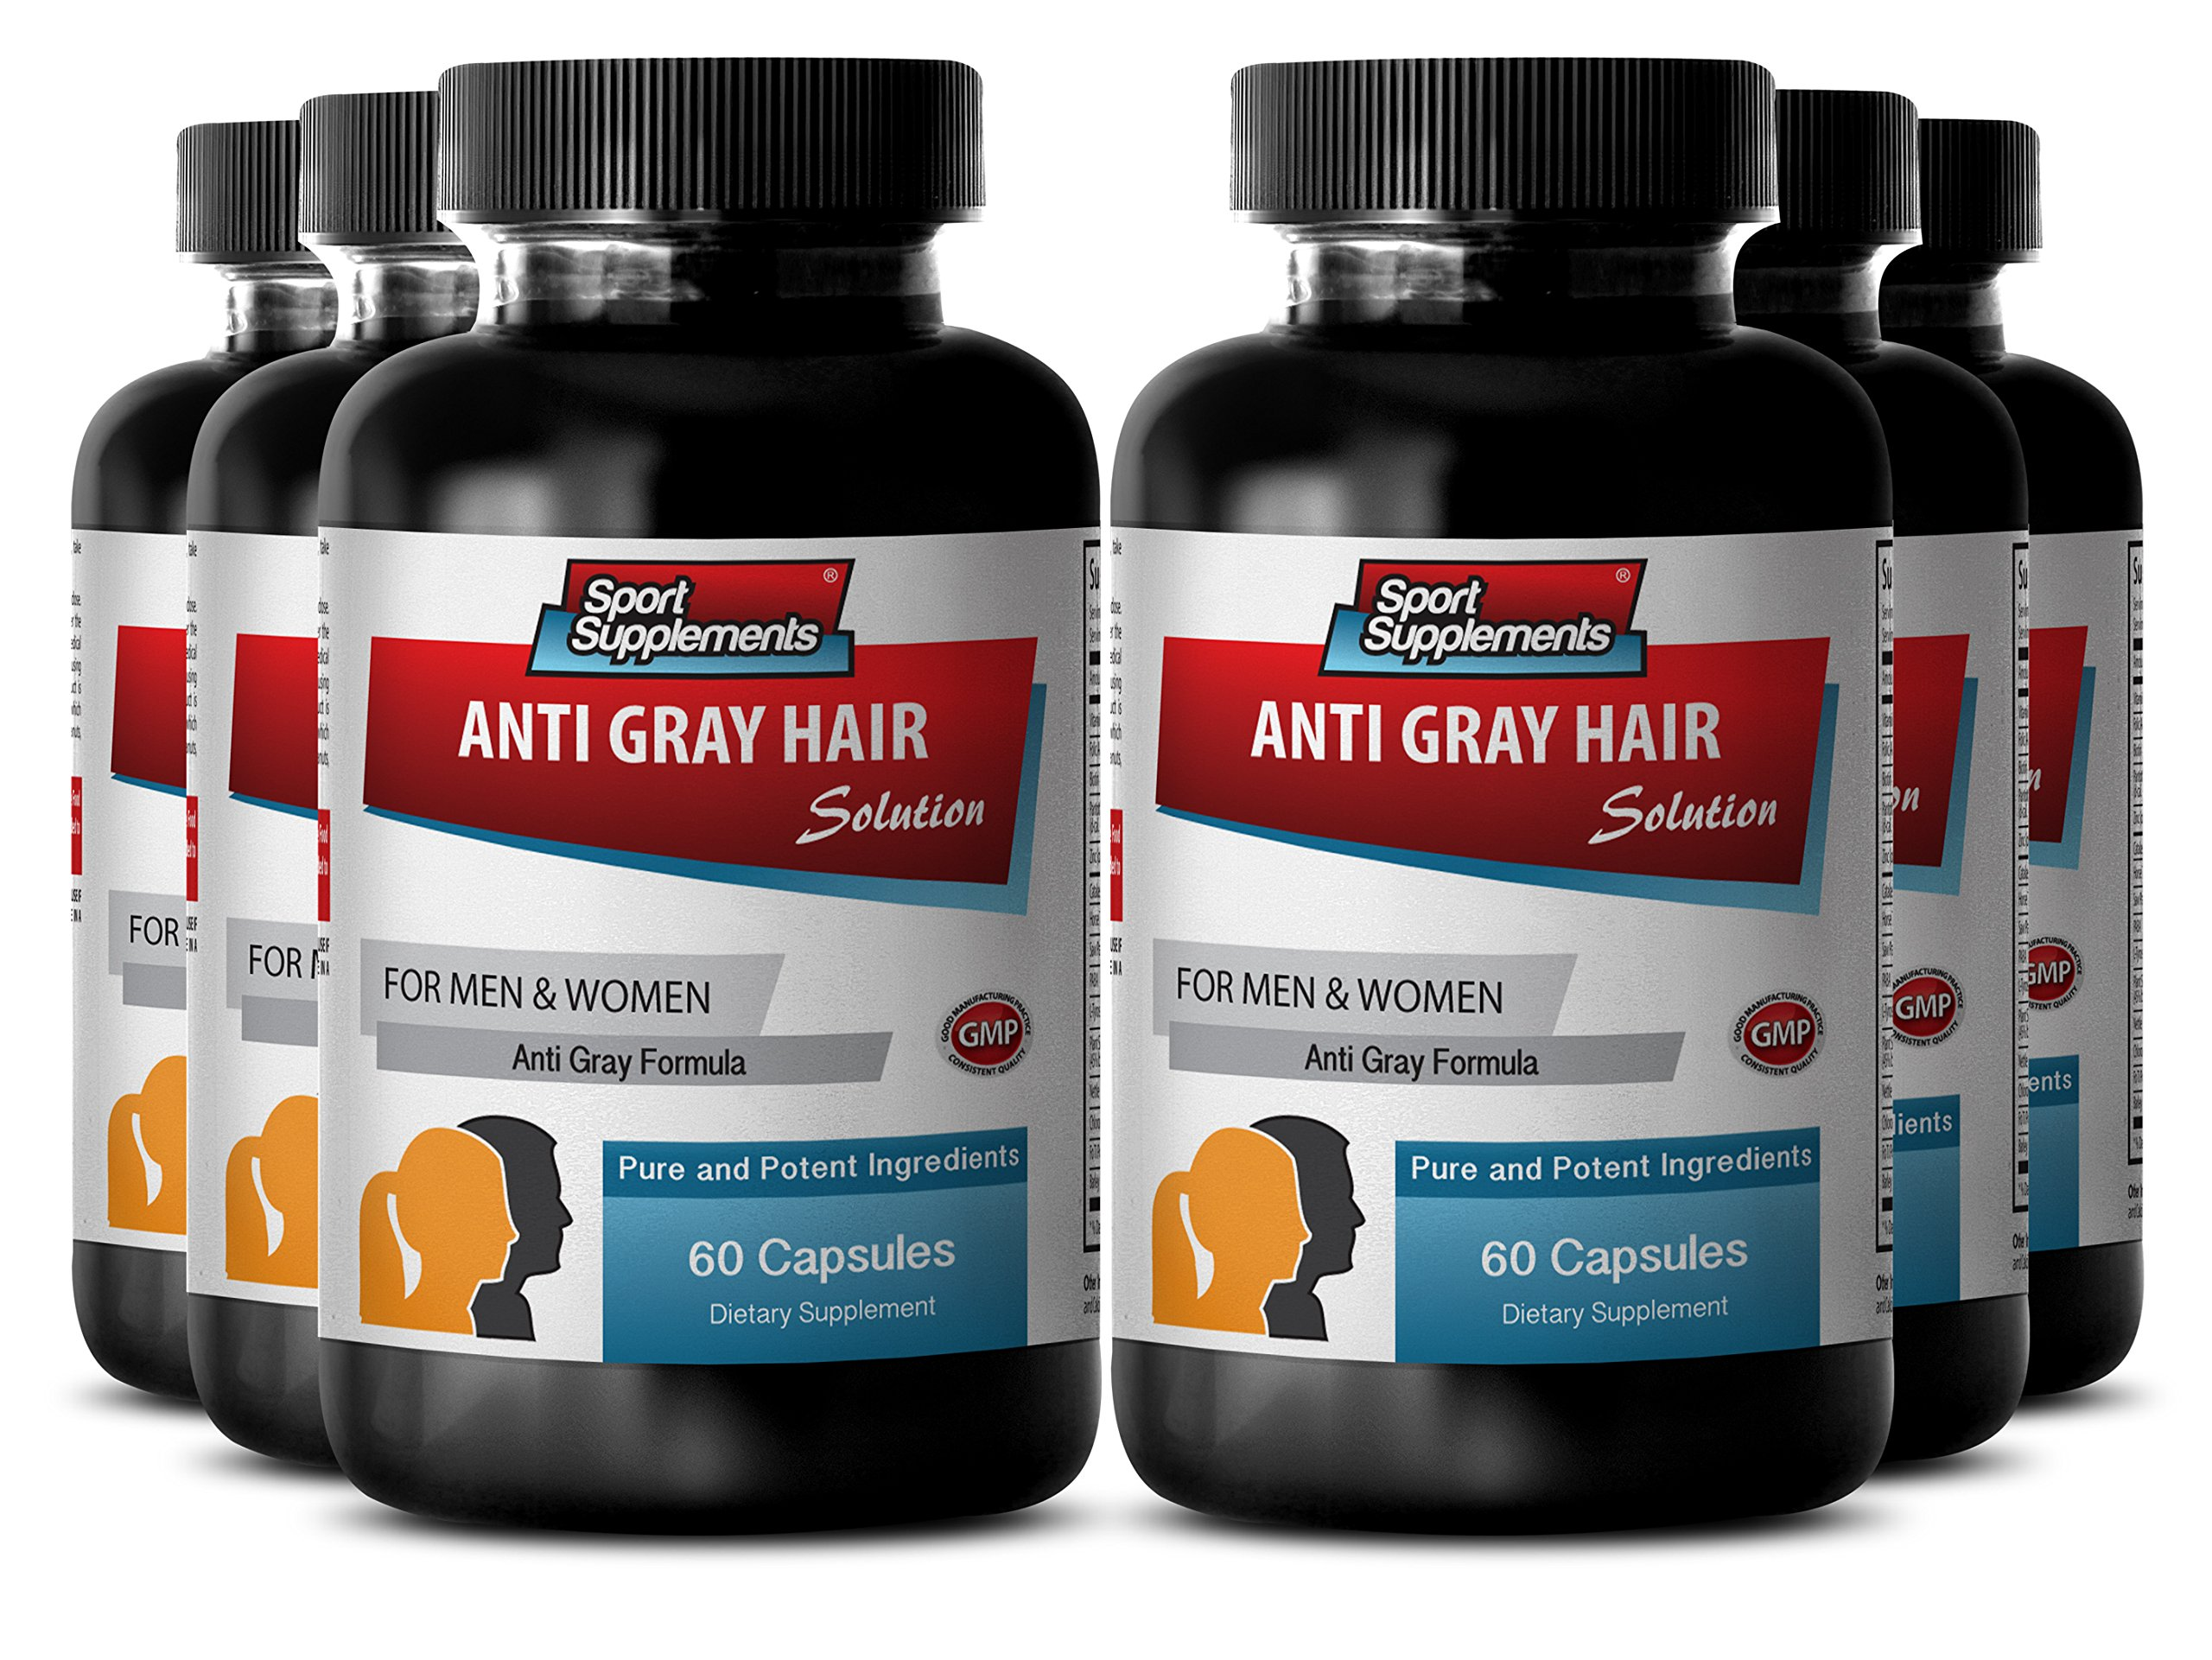 Biotin extract - Anti Gray Hair - Barley grass juice powder - Fo ti root (6 Bottles - 360 Capsules)